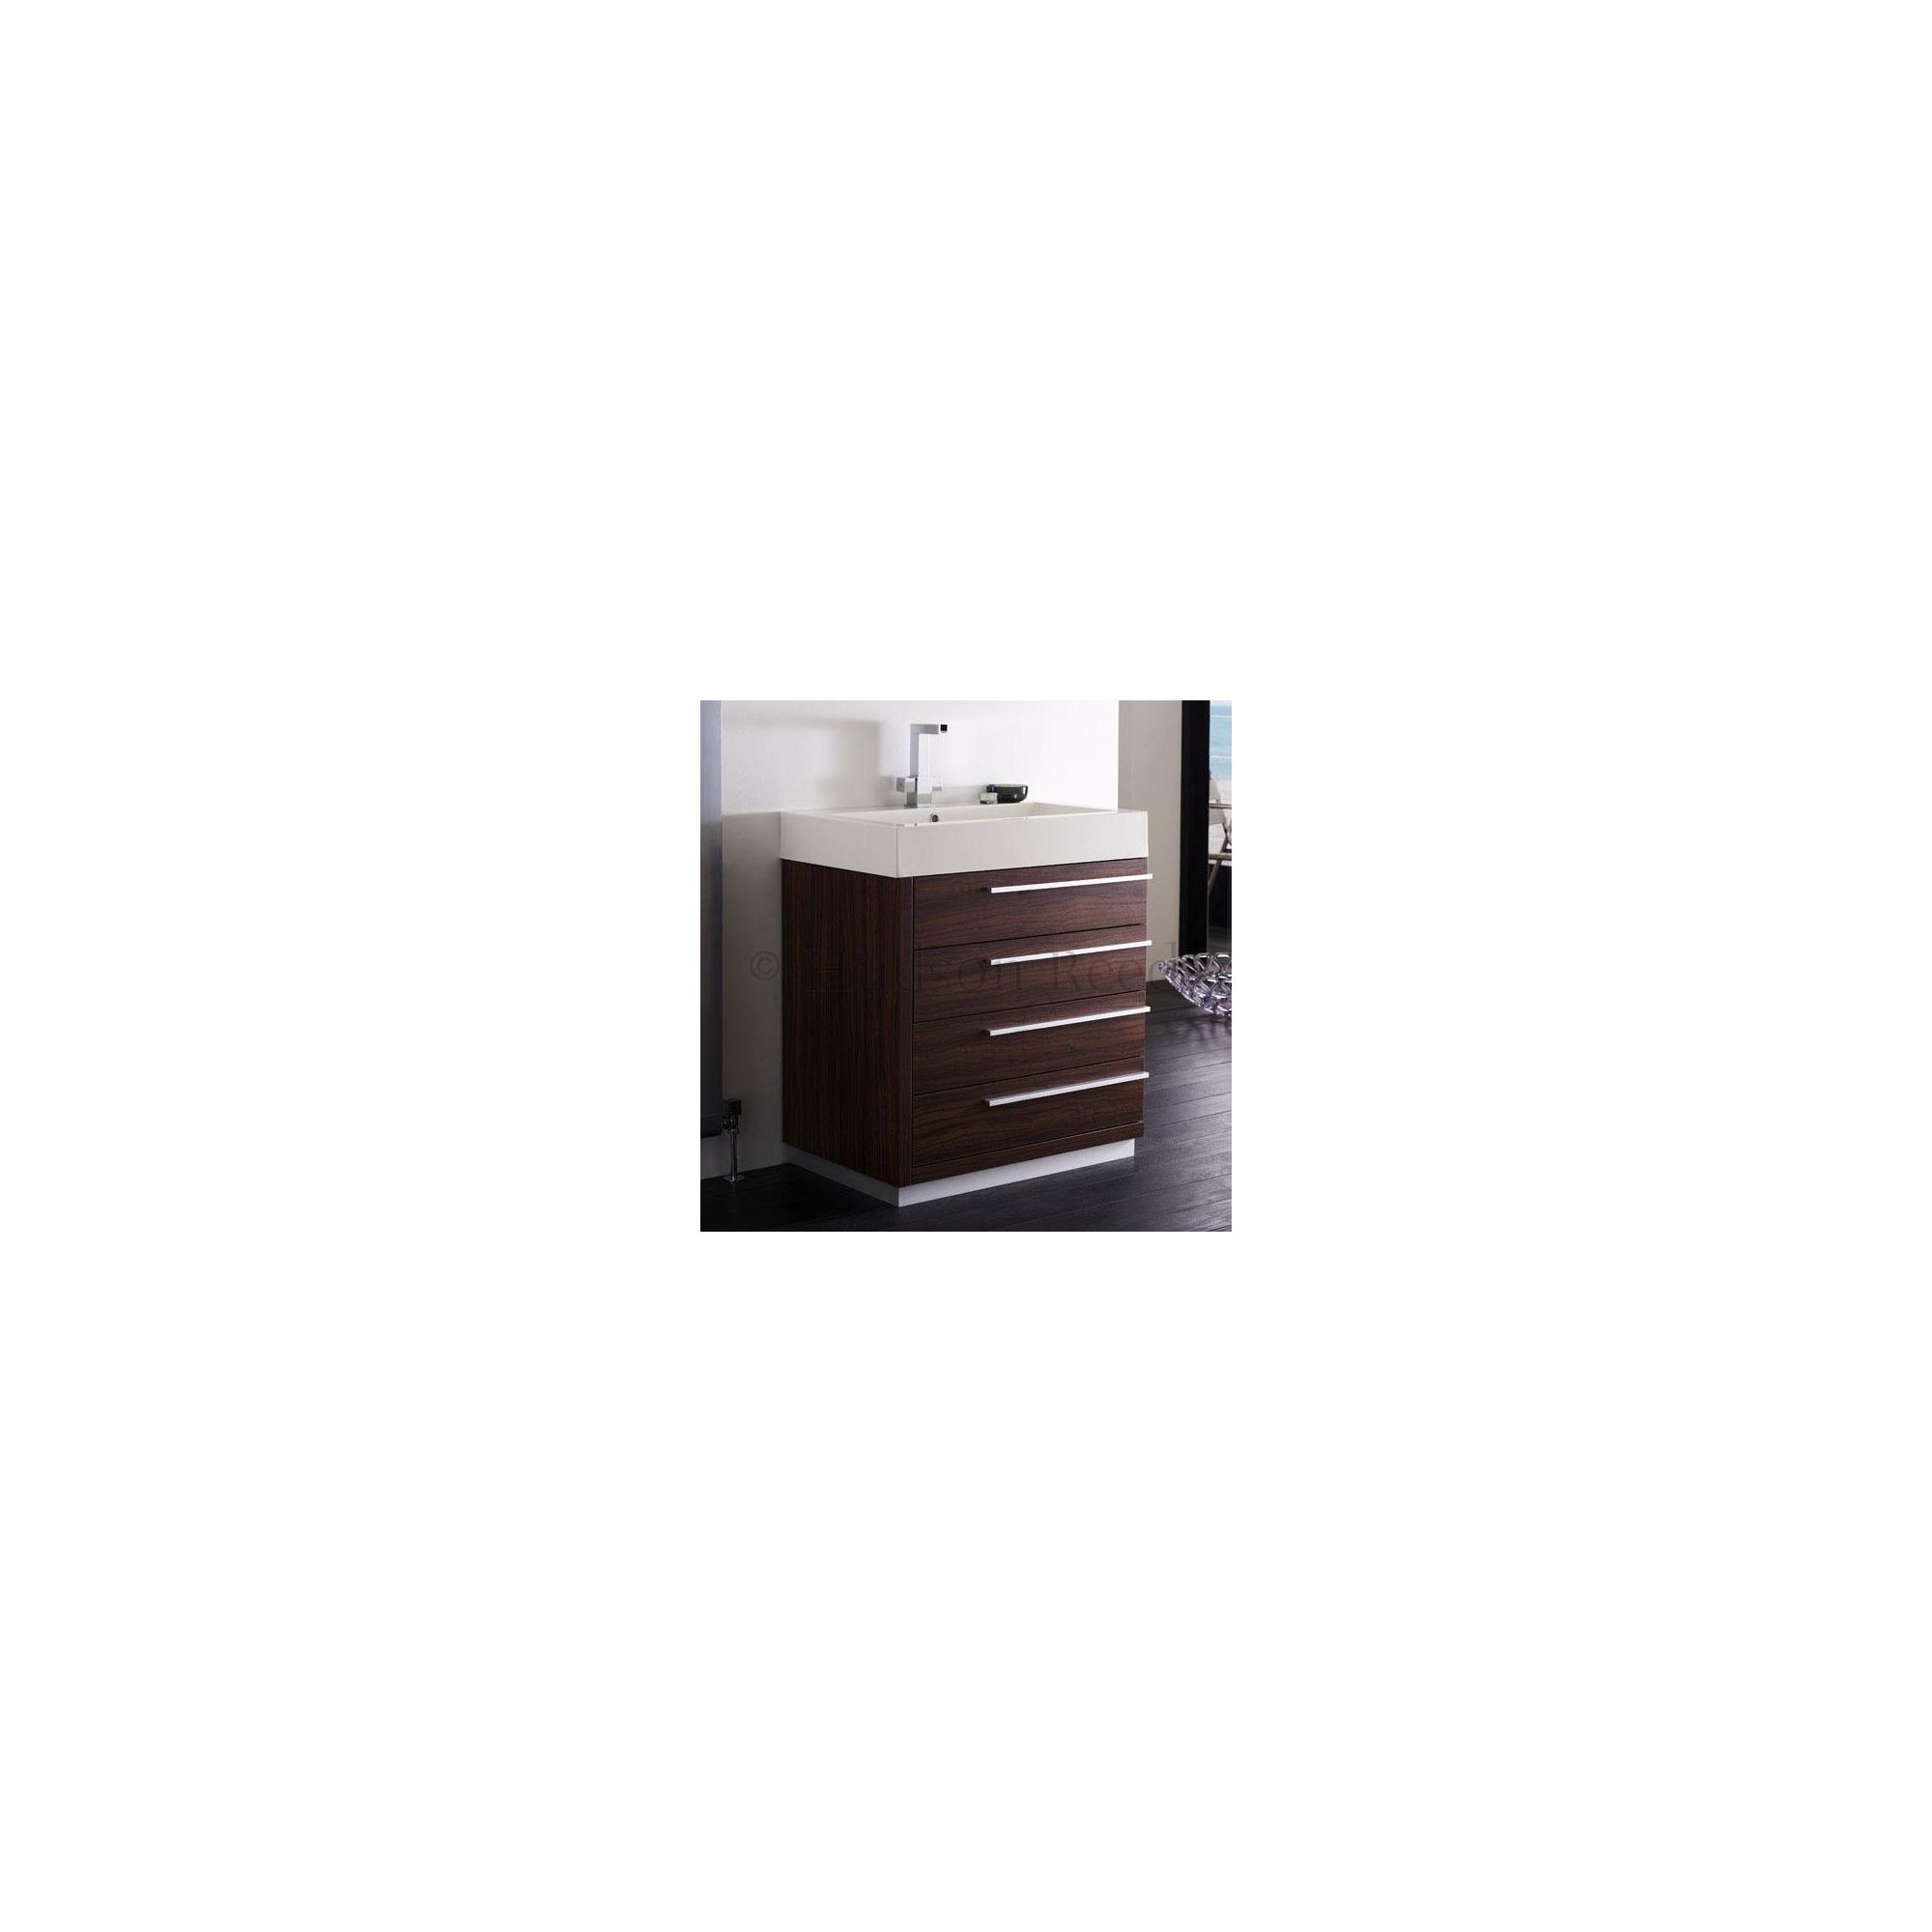 Tesco hudson reed sequence basin and cabinet walnut for Bathroom cabinets tesco